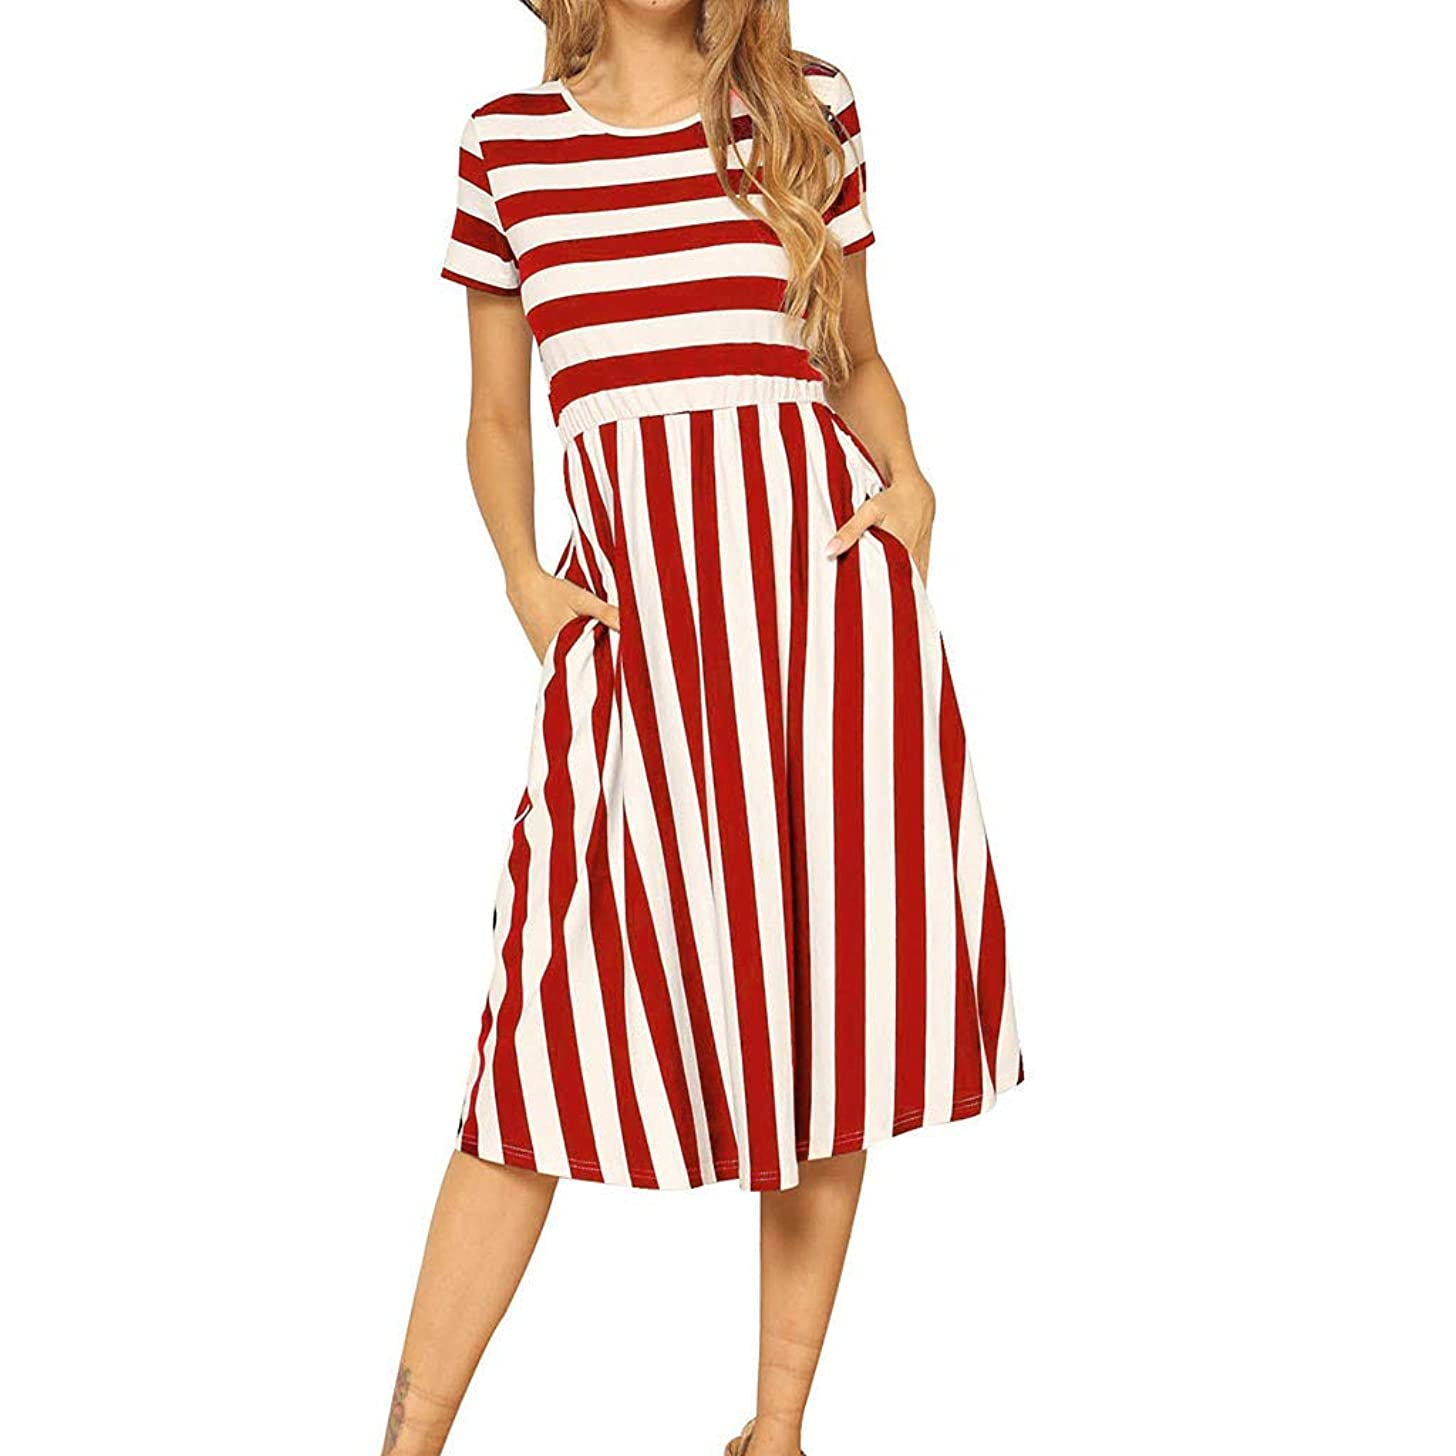 Women's Casual Short Sleeve Striped Swing Midi Dress with Pockets Loose Flowy Sundress Beach Swing Party Dresses